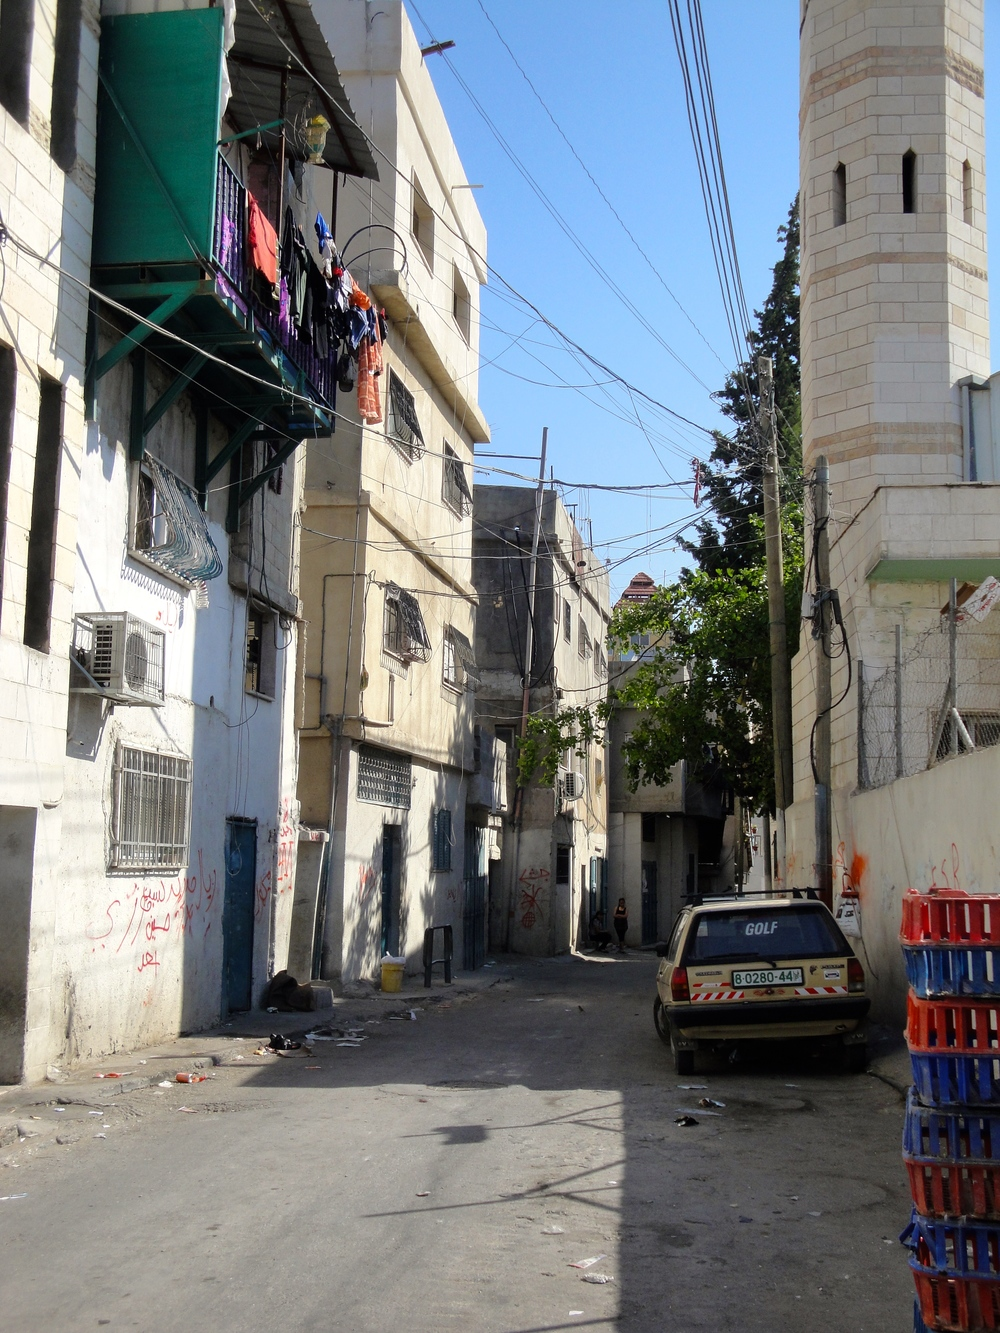 A typical street in Bethlehem, in the Palestinian Territories.